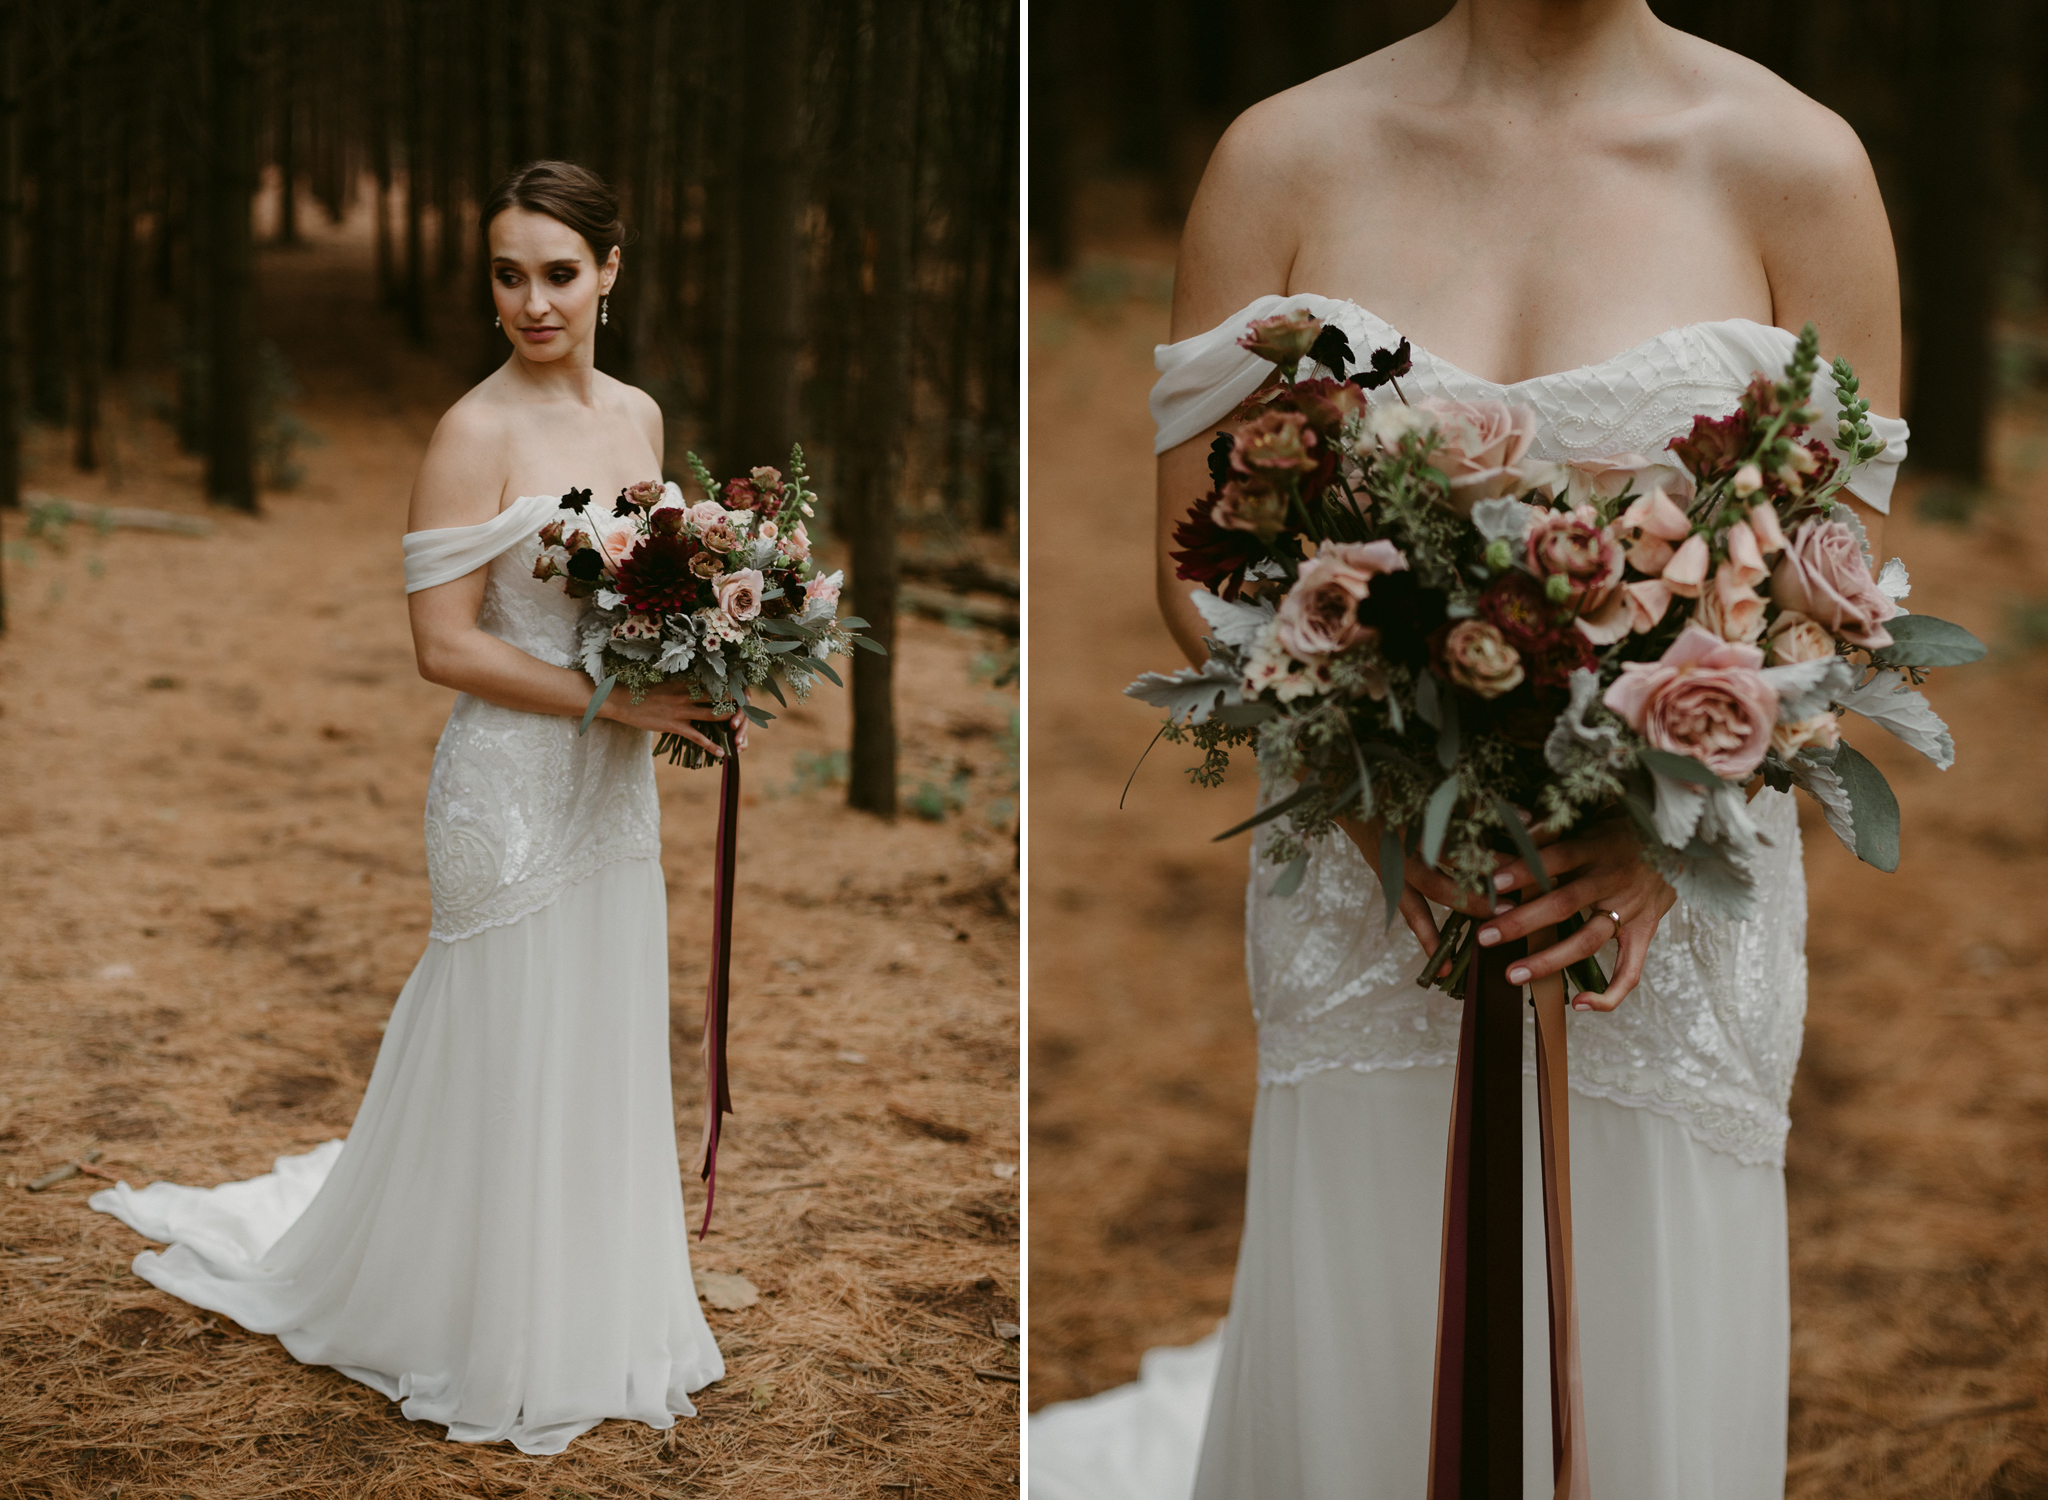 Bride holding large bouquet in forest